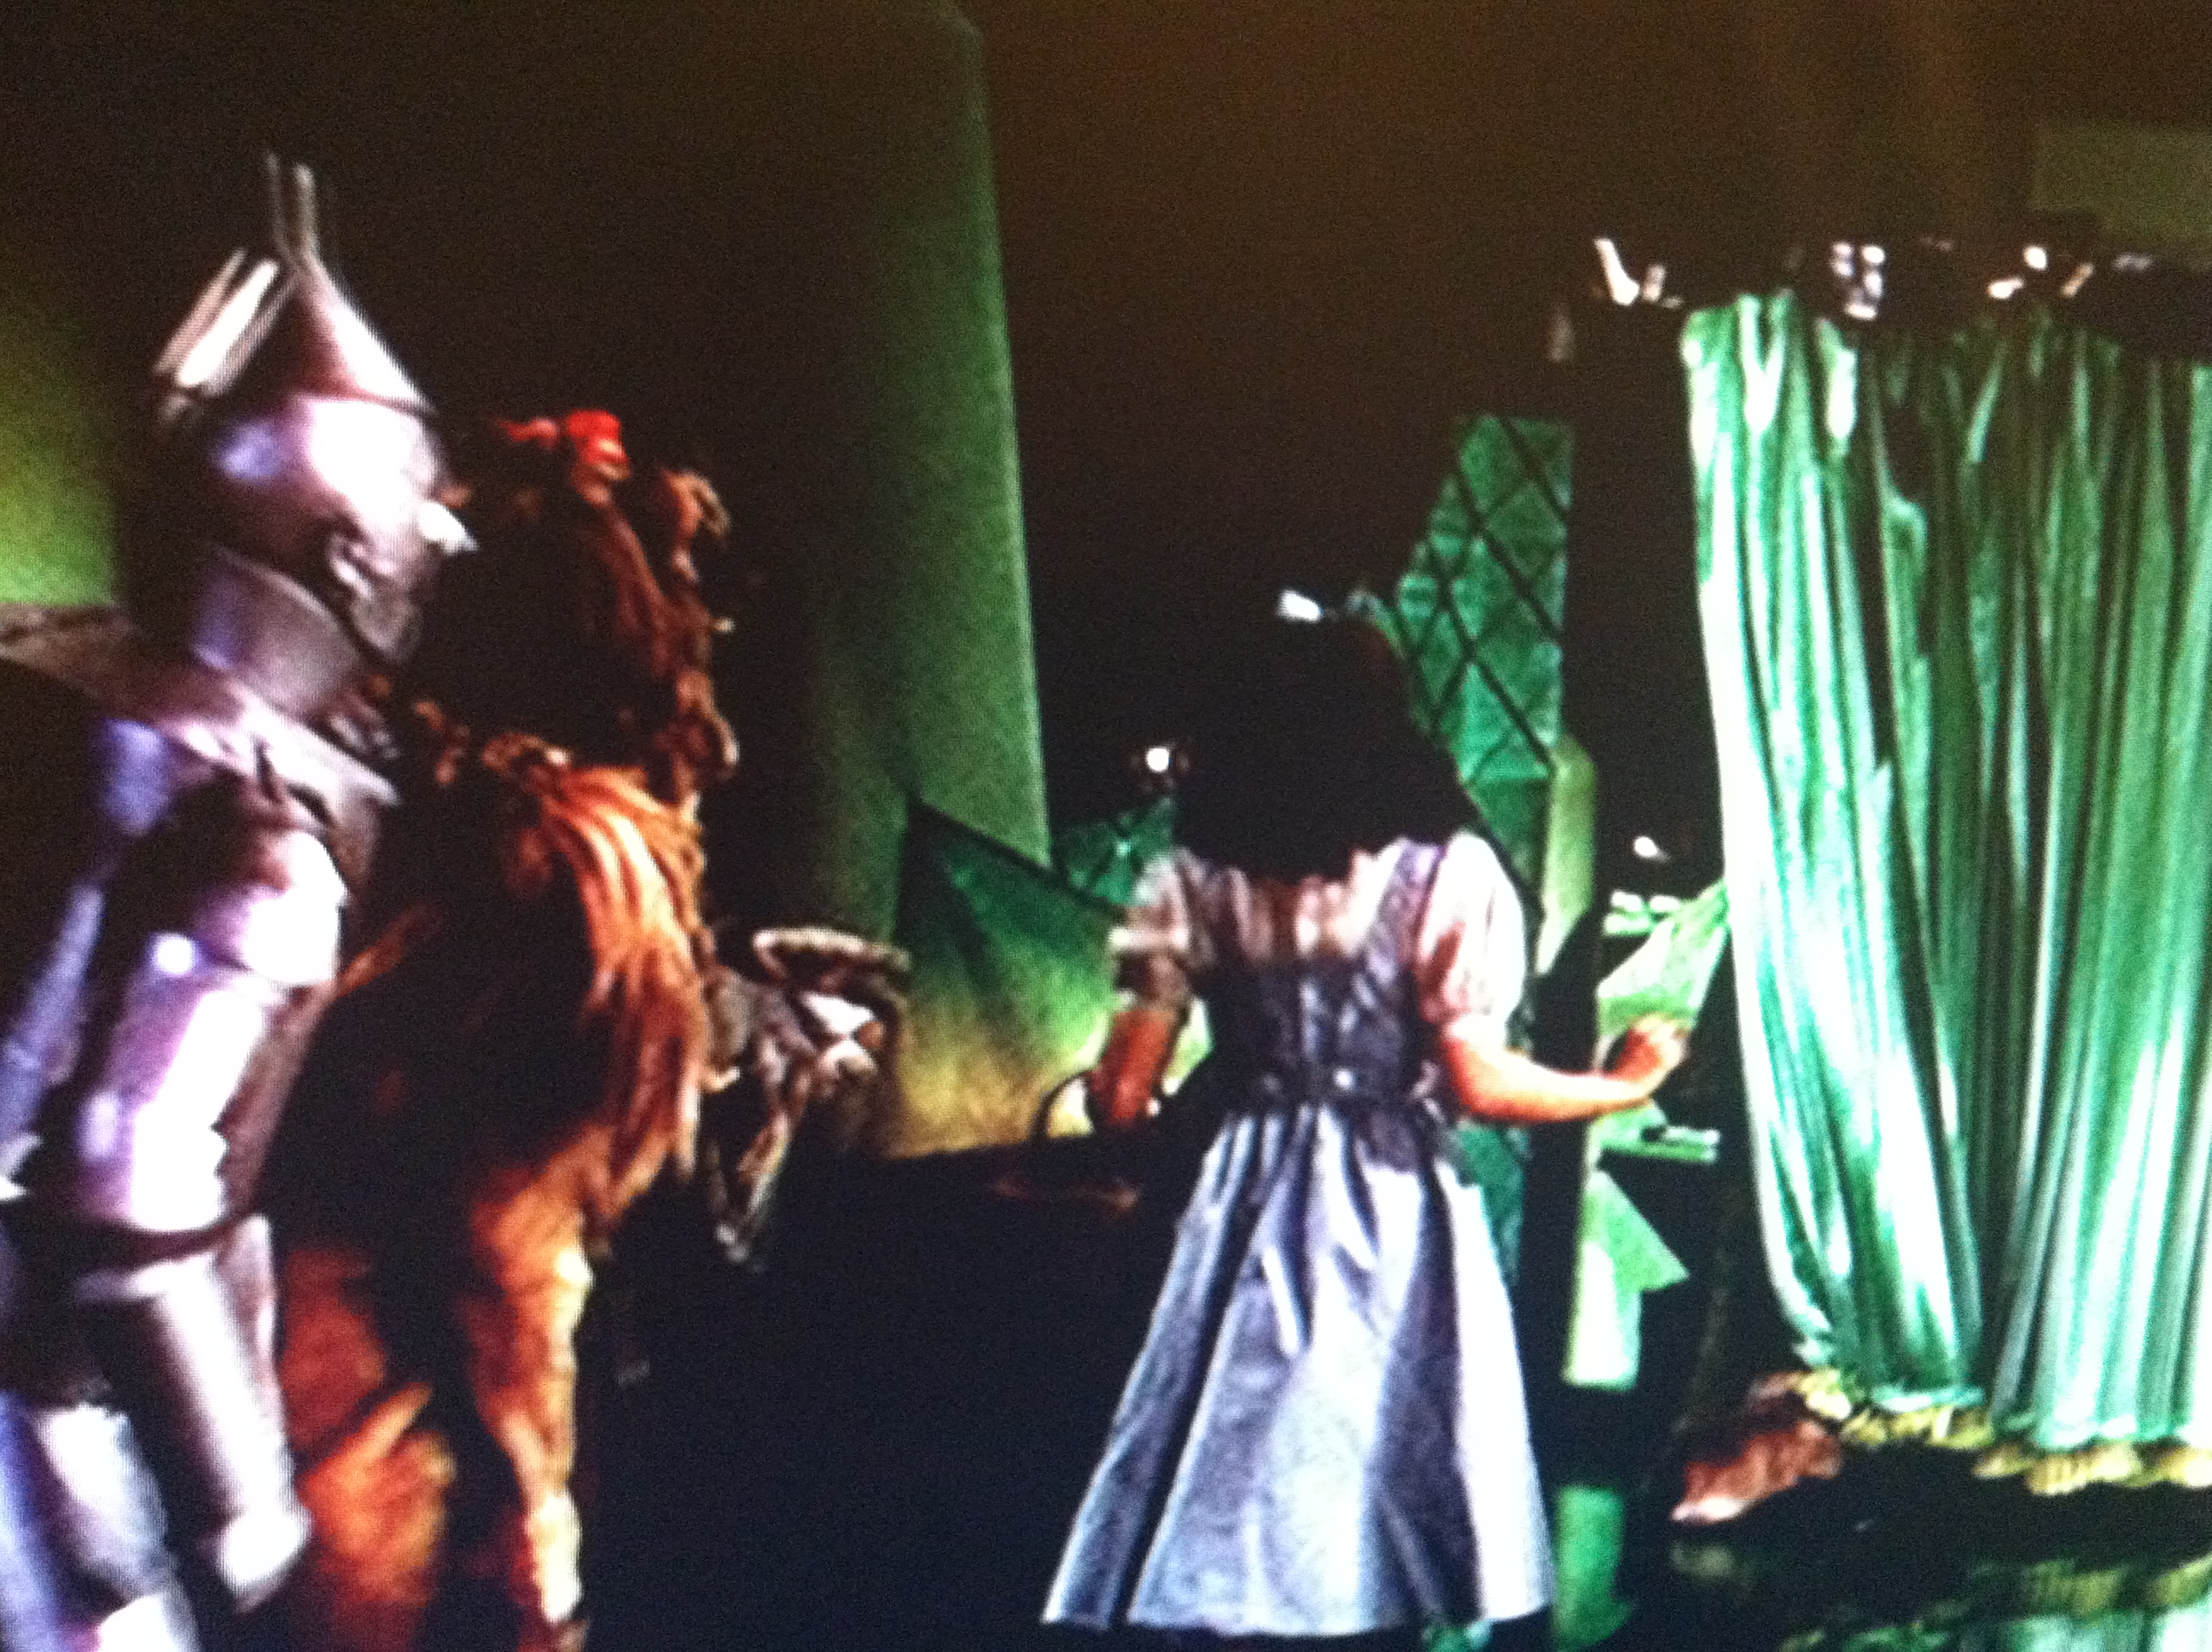 Behind the curtain wizard of oz - The Man Behind The Curtain The Creation Of The Land Of Oz